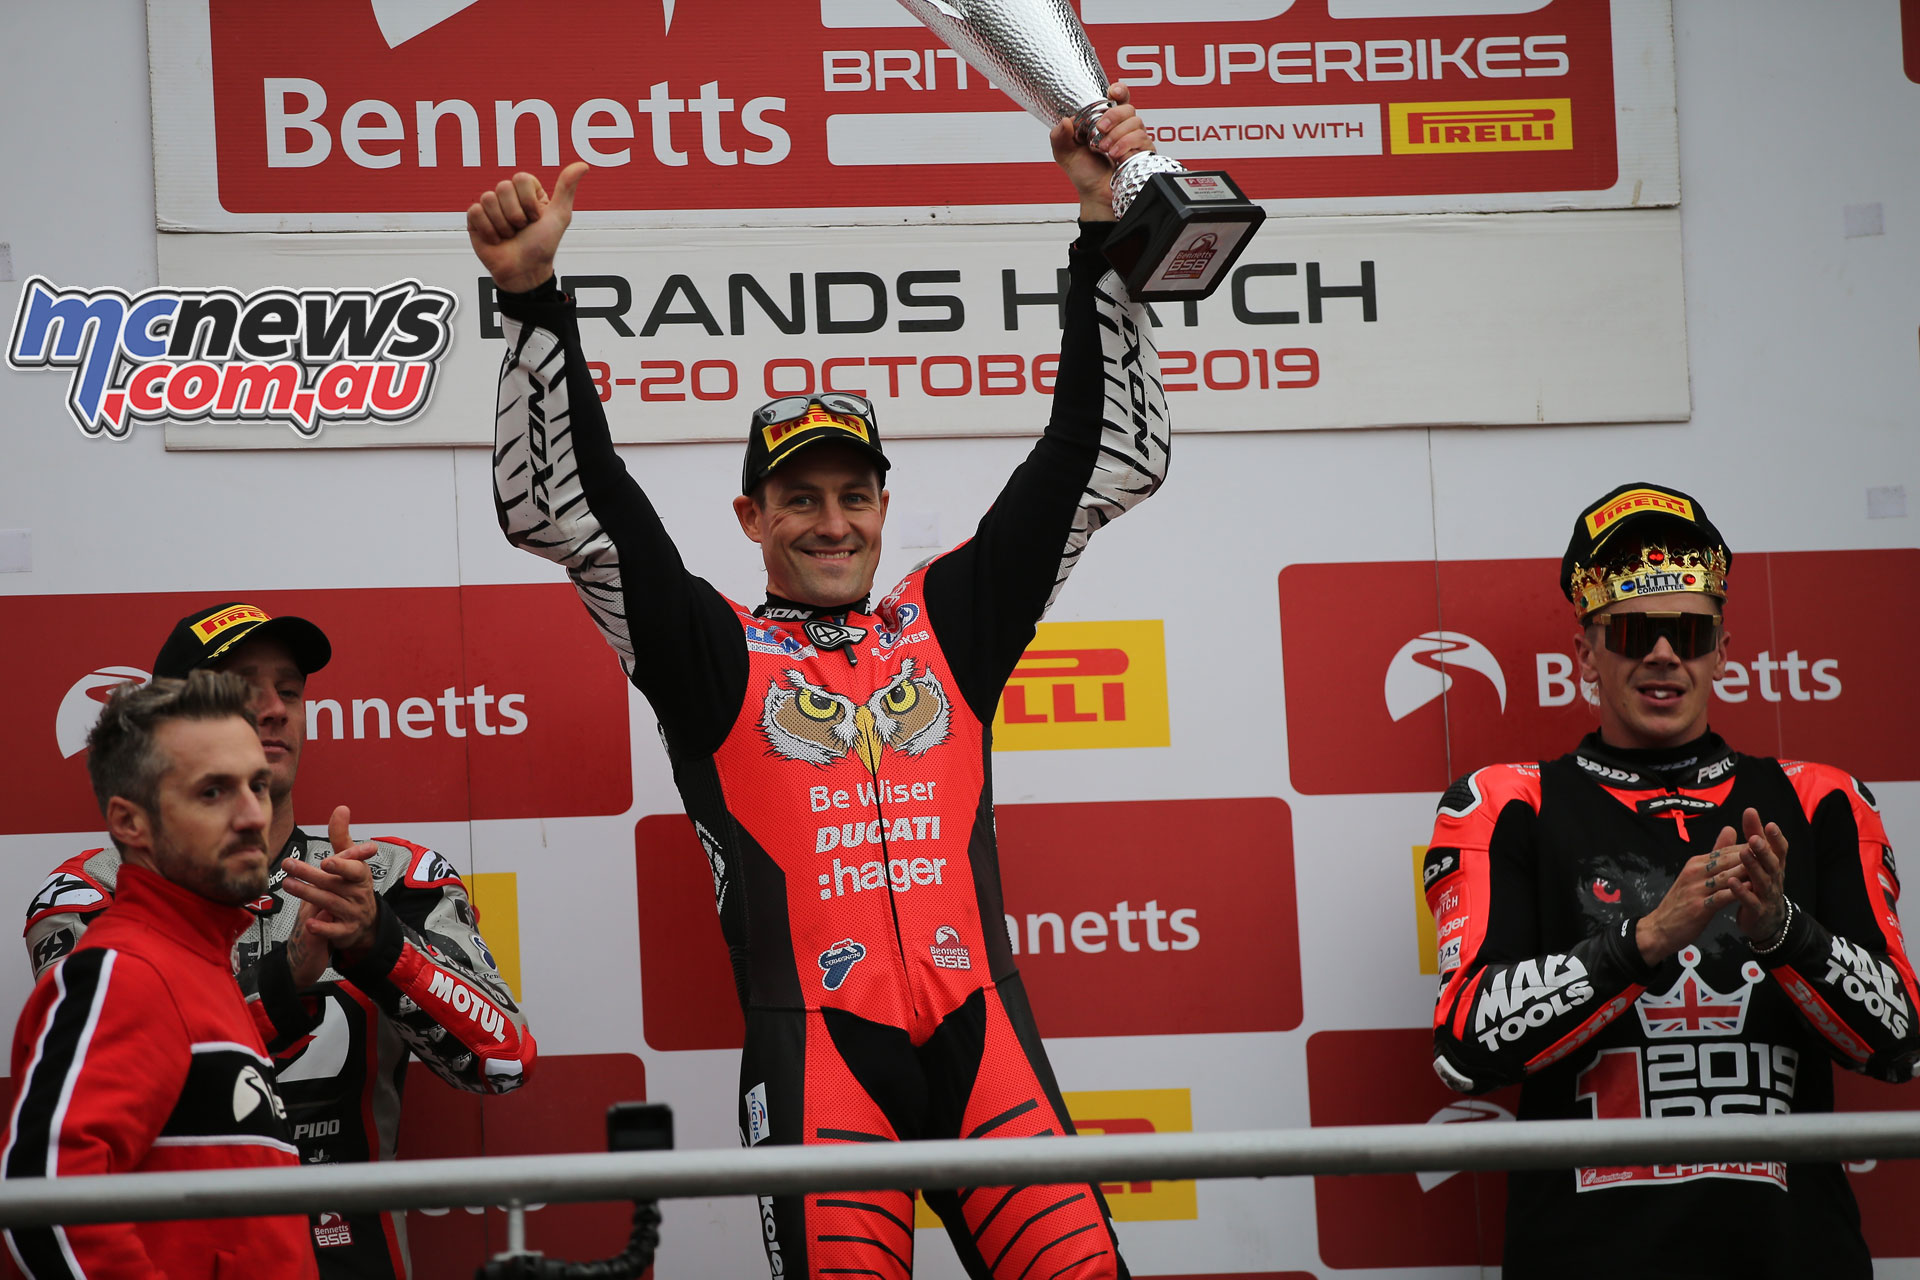 BSB Rnd Brands Hatch Josh Brookes